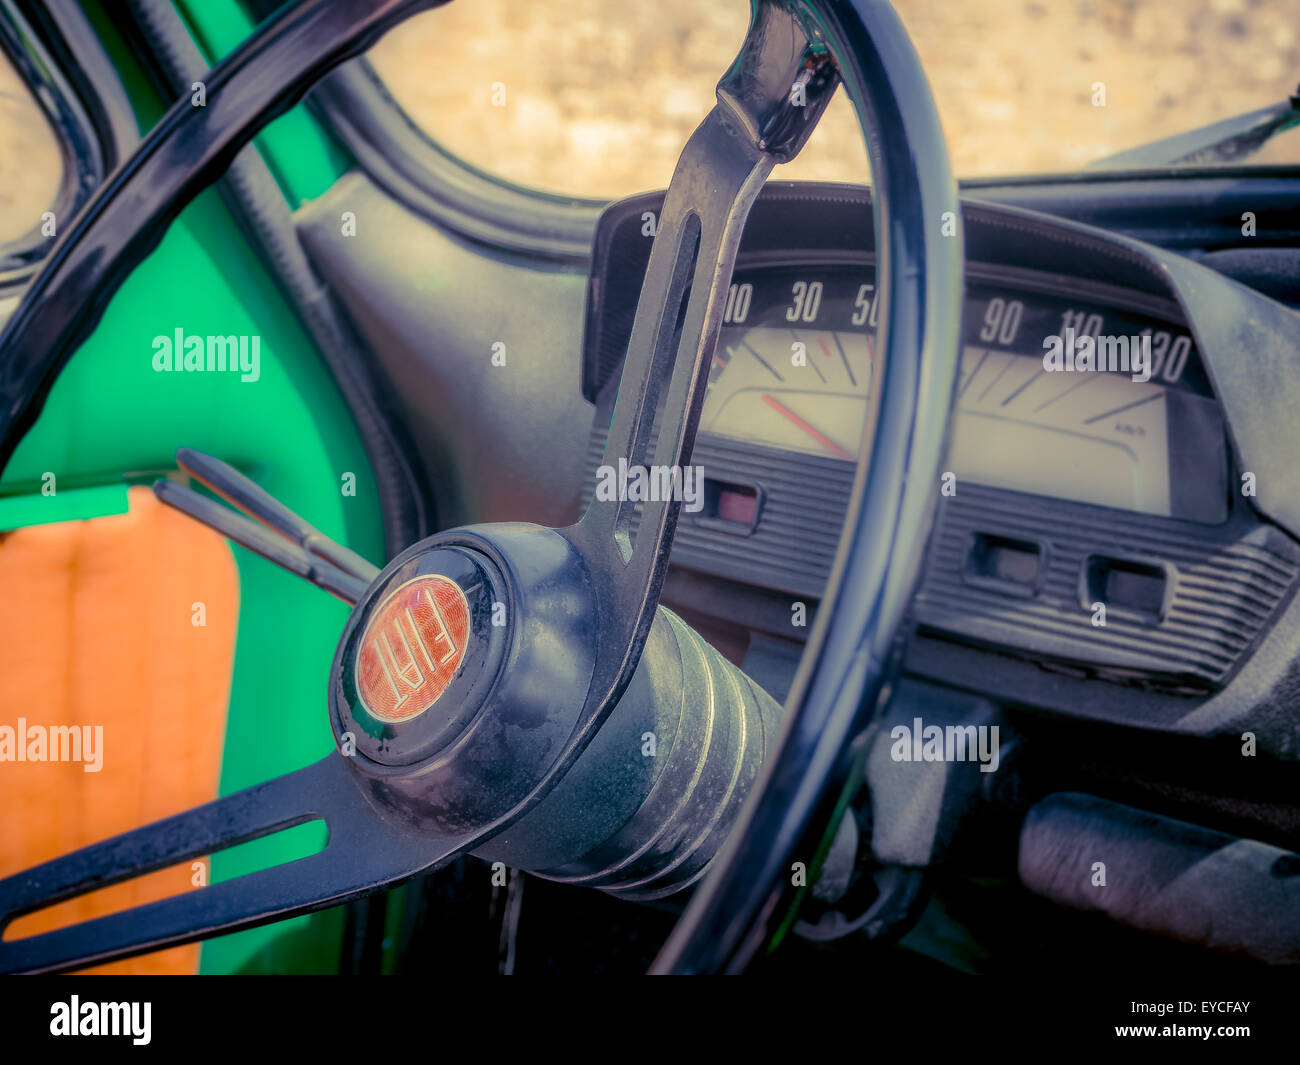 Close-up of a steering wheel on a classic Fiat 500 car. - Stock Image